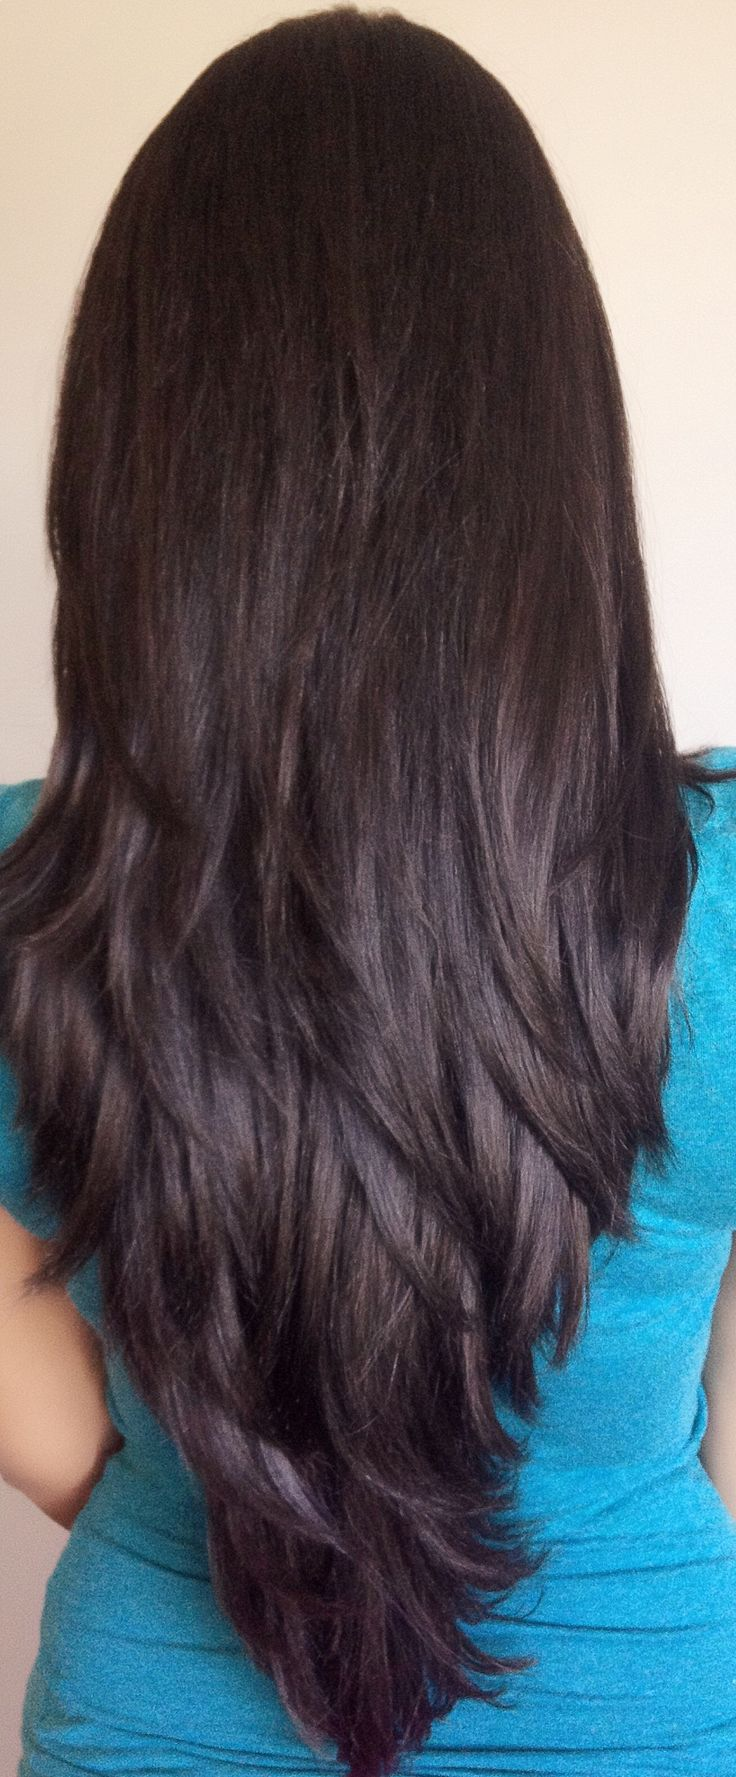 Farah Dhukai step-by-step long layered haircut: http://youtu.be/Y66mkFGDZrU... POST YOUR FREE LISTING TODAY! Hair News Network. All Hair. All The Time. http://www.HairNewsNetwork.com